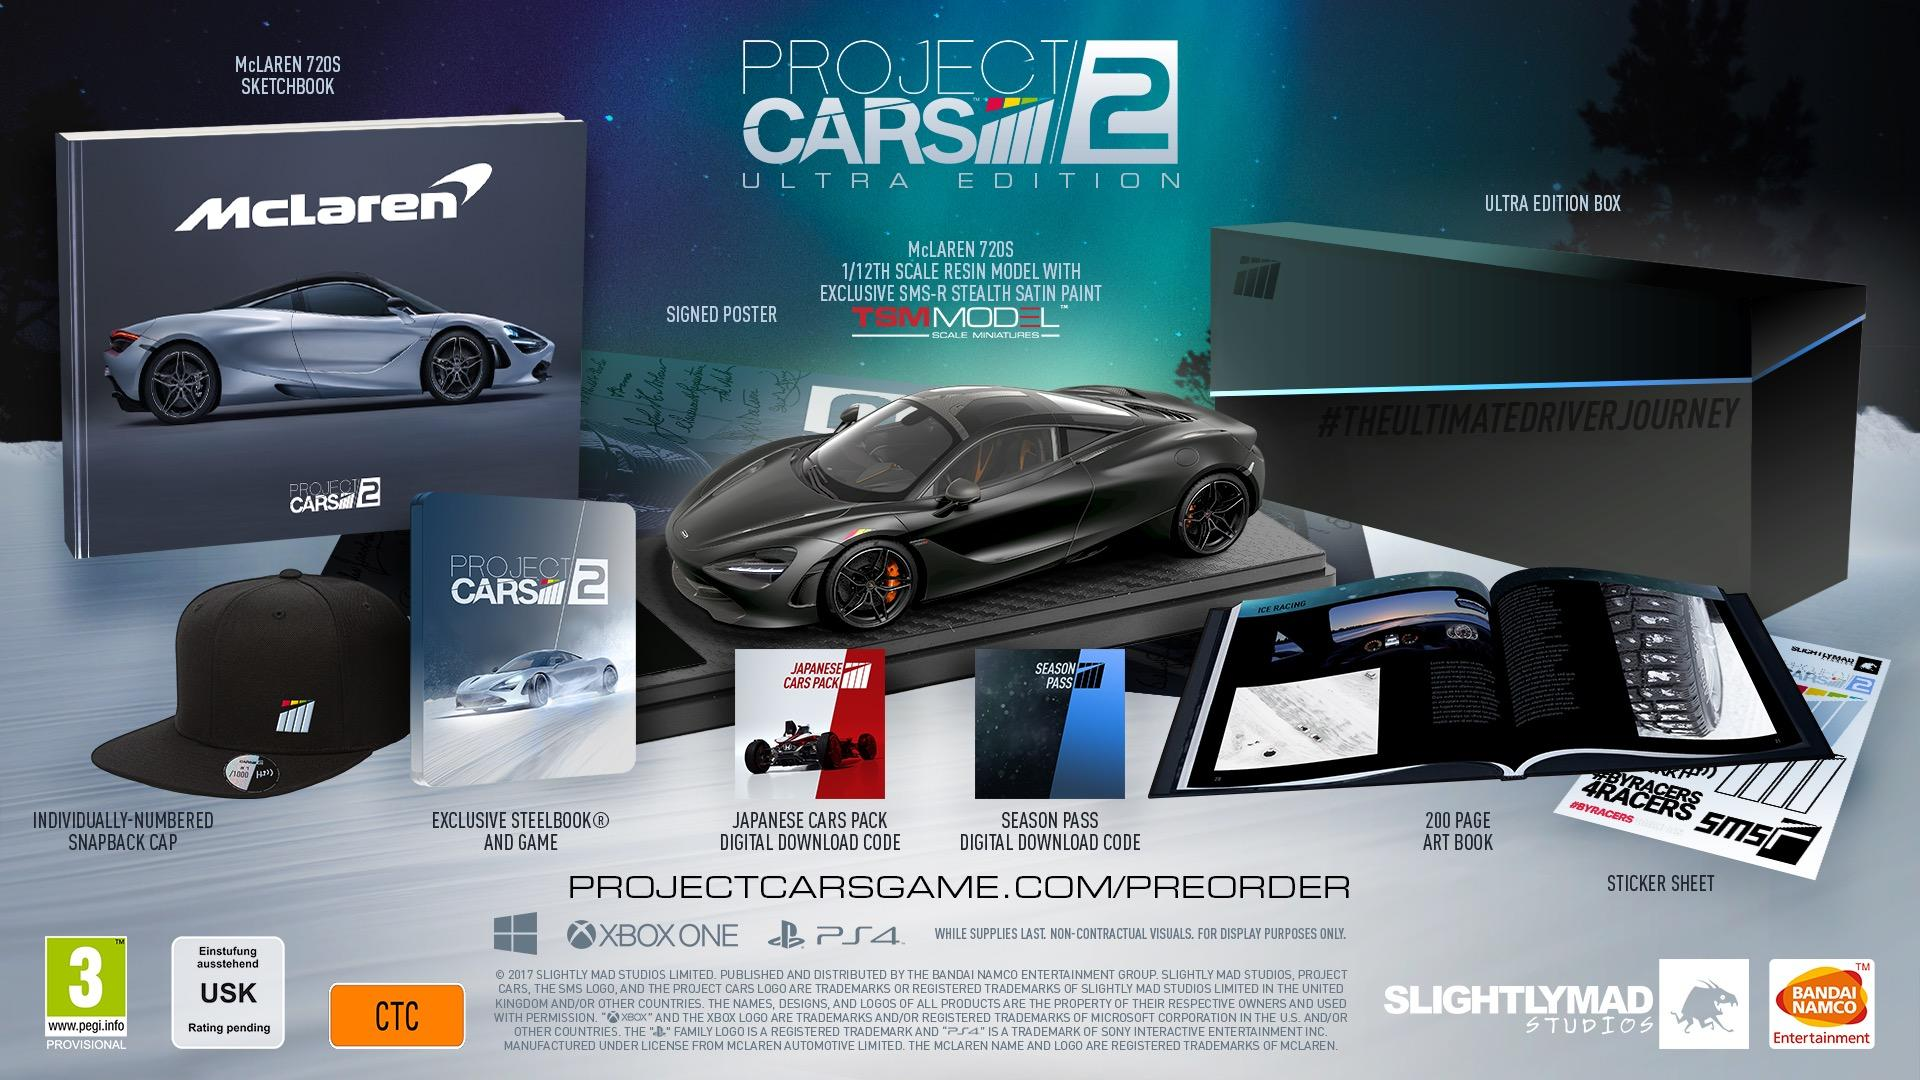 project cars 2 special editions unveiled with mclaren 720s model xbox one xbox 360 news at. Black Bedroom Furniture Sets. Home Design Ideas